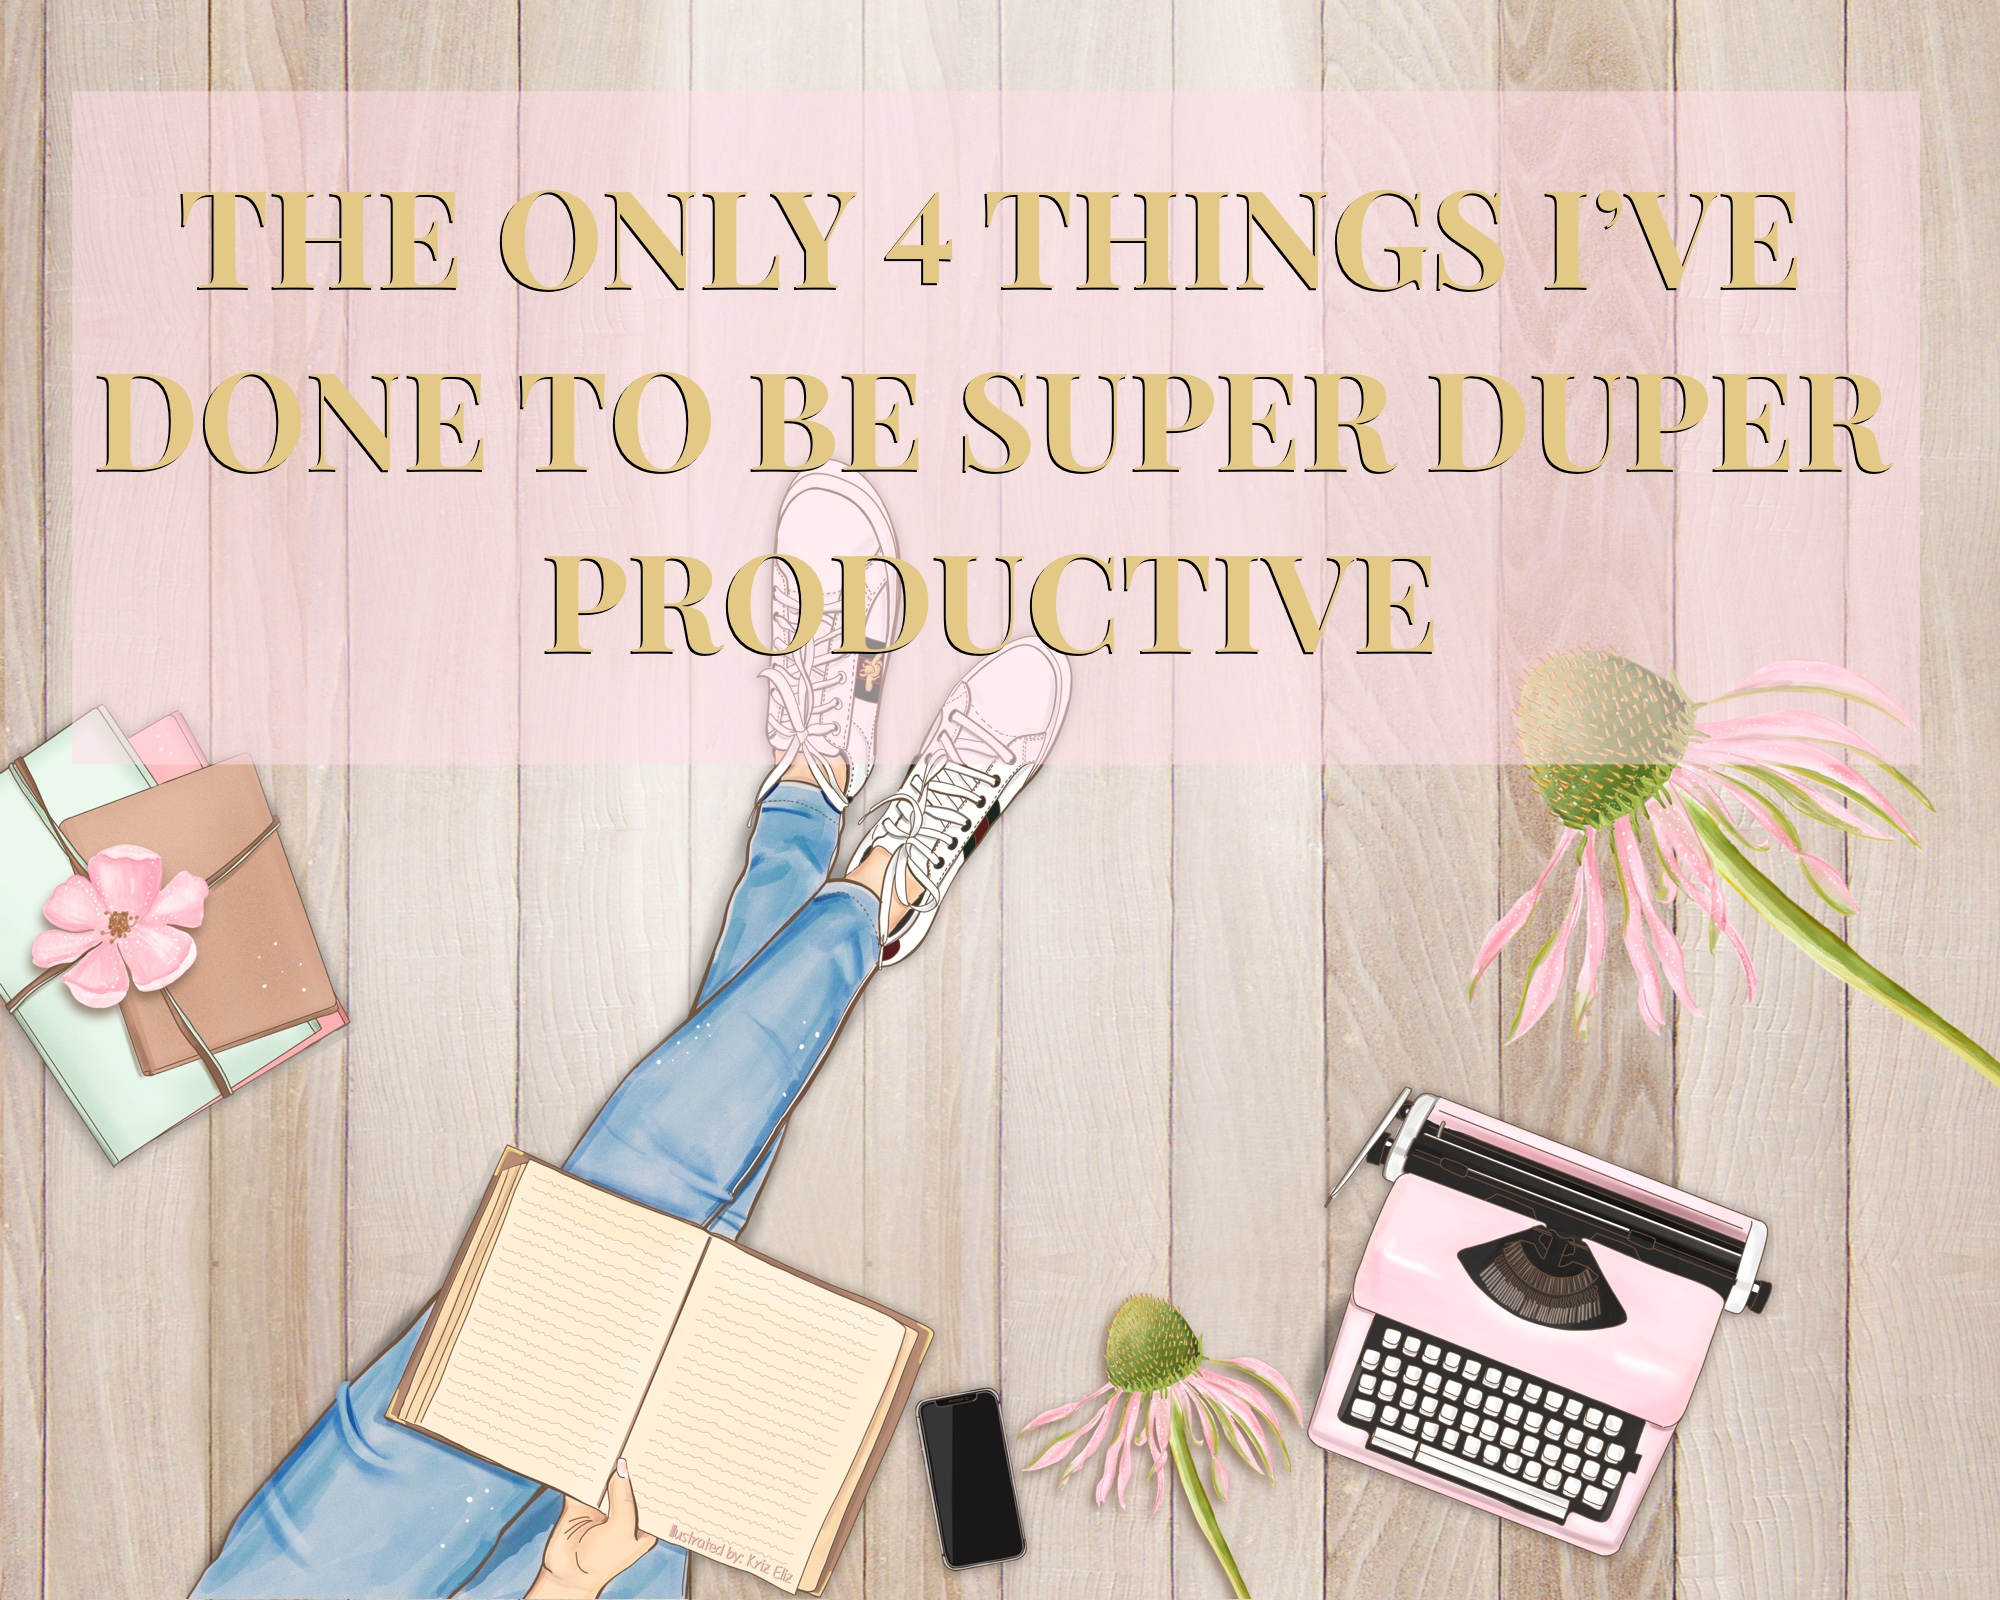 The 4 Things I've Done to be Super Duper Productive